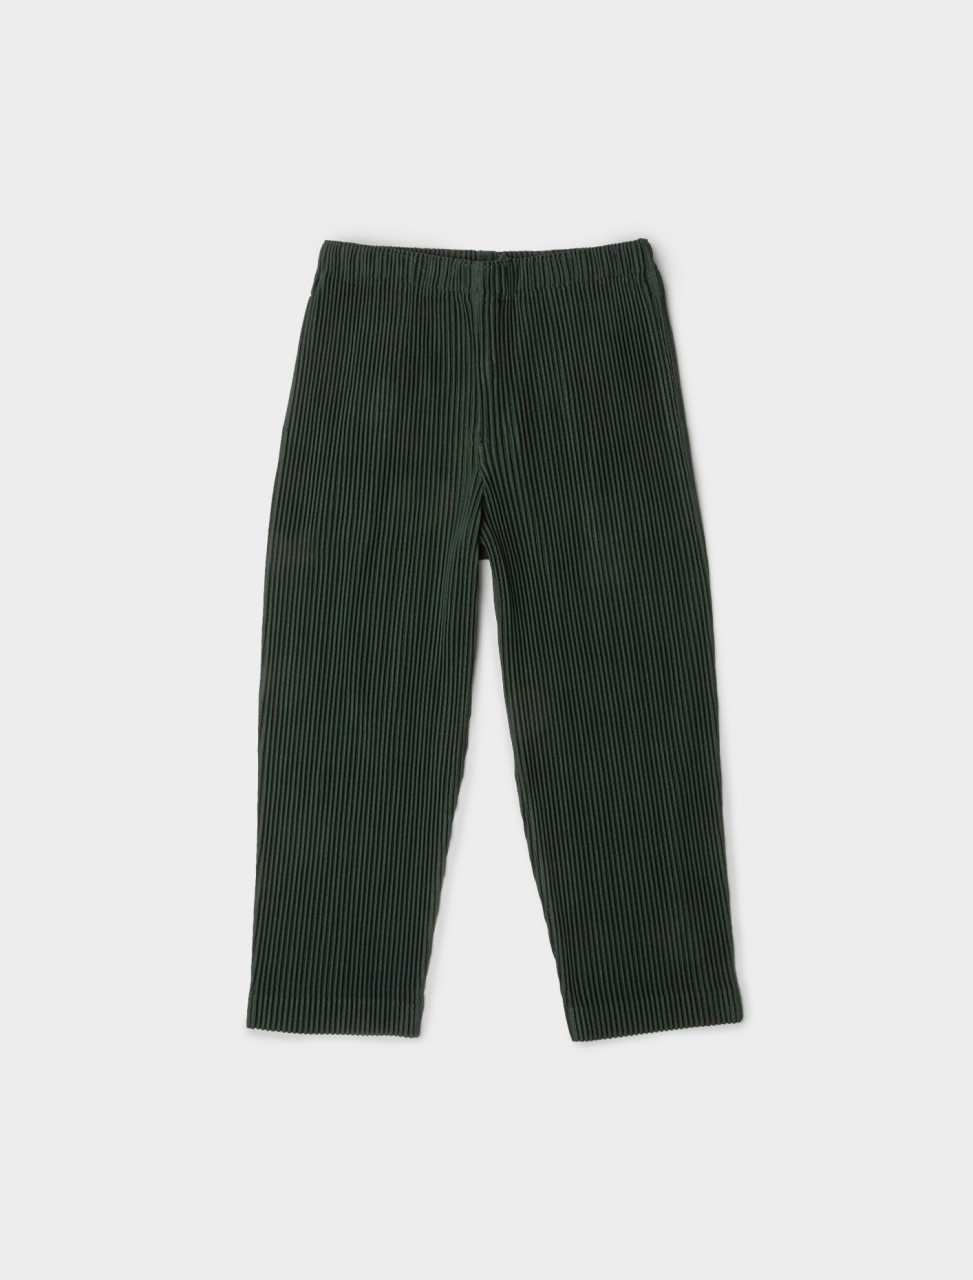 Front view of HOMME PLISSÉ Issey Miyake Cropped Pleated Trouser in Green